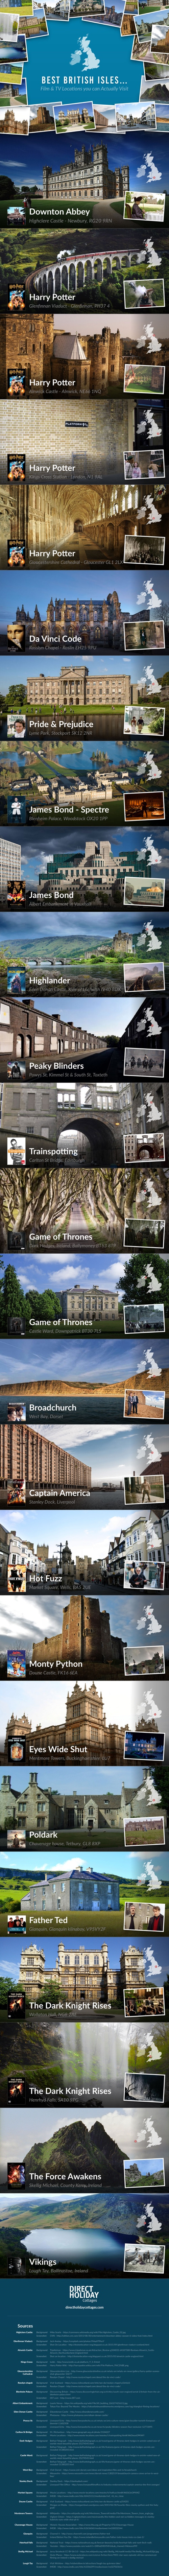 Best British Isles Film & TV Locations you can Actually Visit infographic